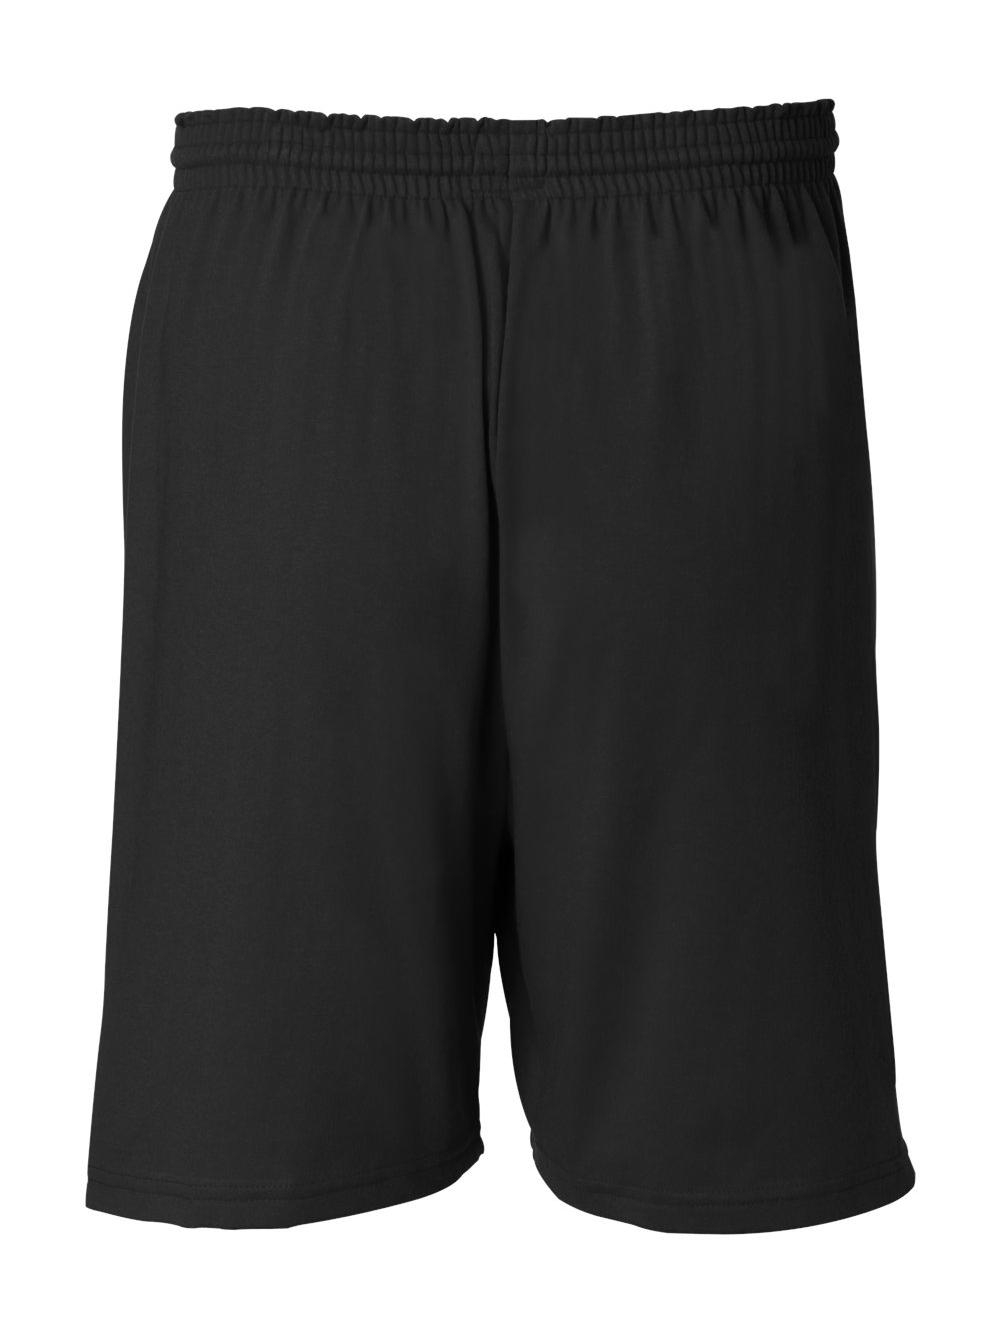 Champion-Cotton-Gym-Shorts-8187 thumbnail 4